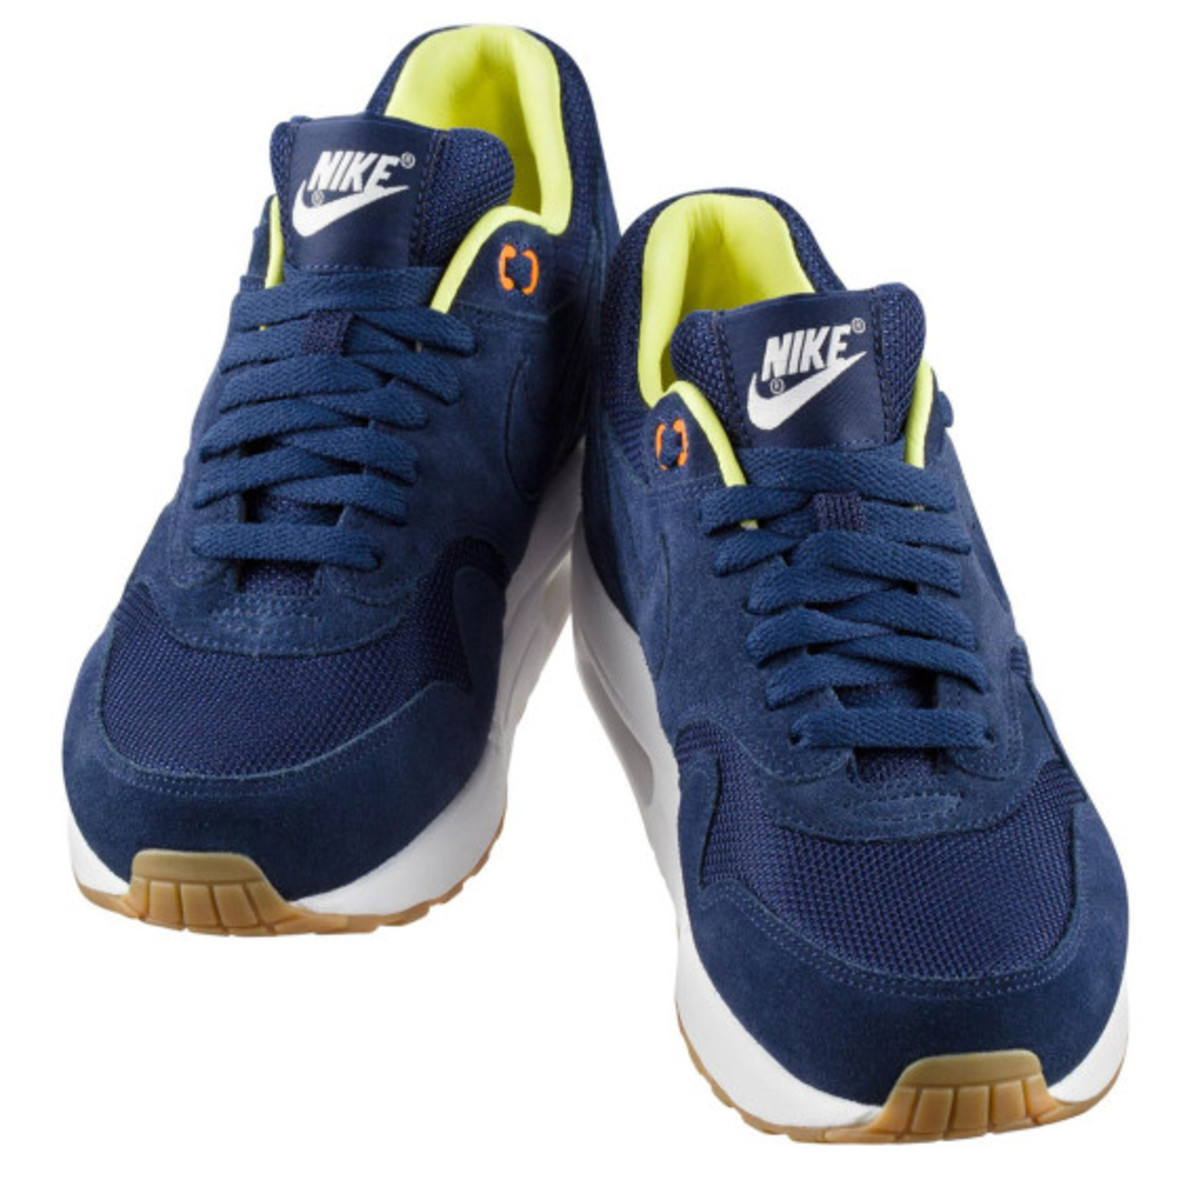 a-p-c-x-nike-air-maxim-1-available-now-16